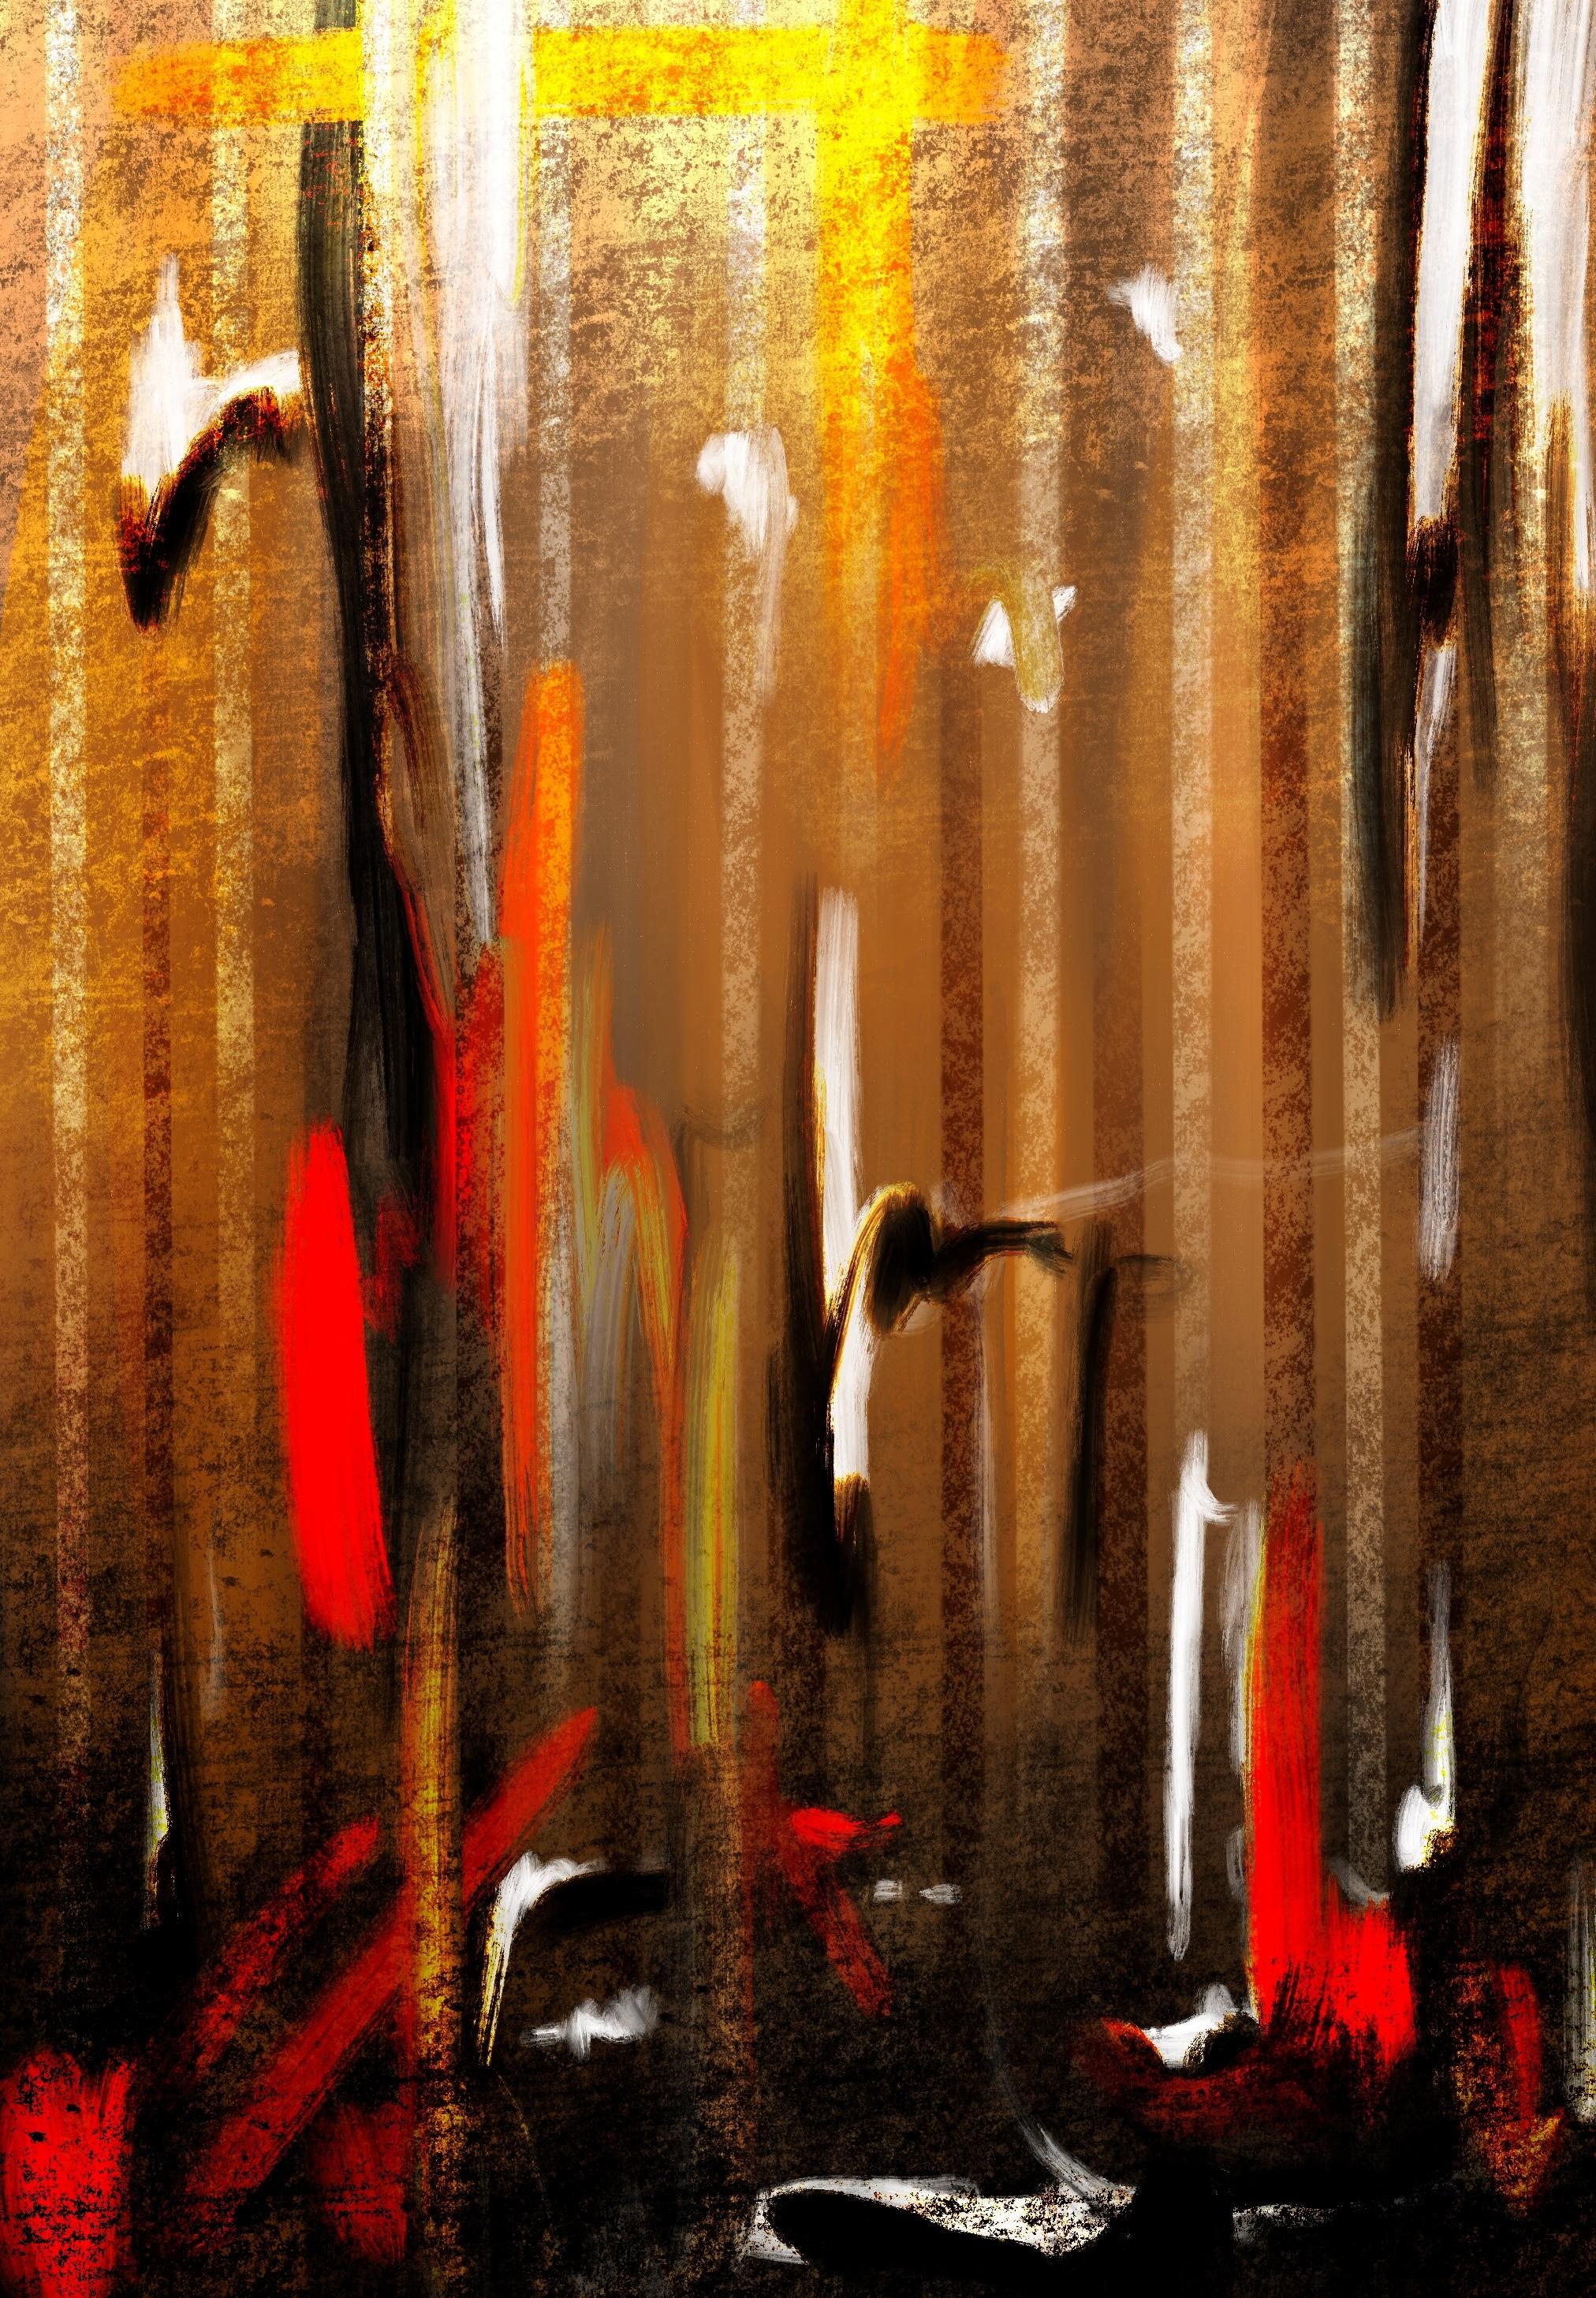 An abstract digital painting by Lily Bourne printed on eco fine art paper titled Autumnal Burst showing orange, red, white and black downward strokes portraying trees with the colours of autumn.